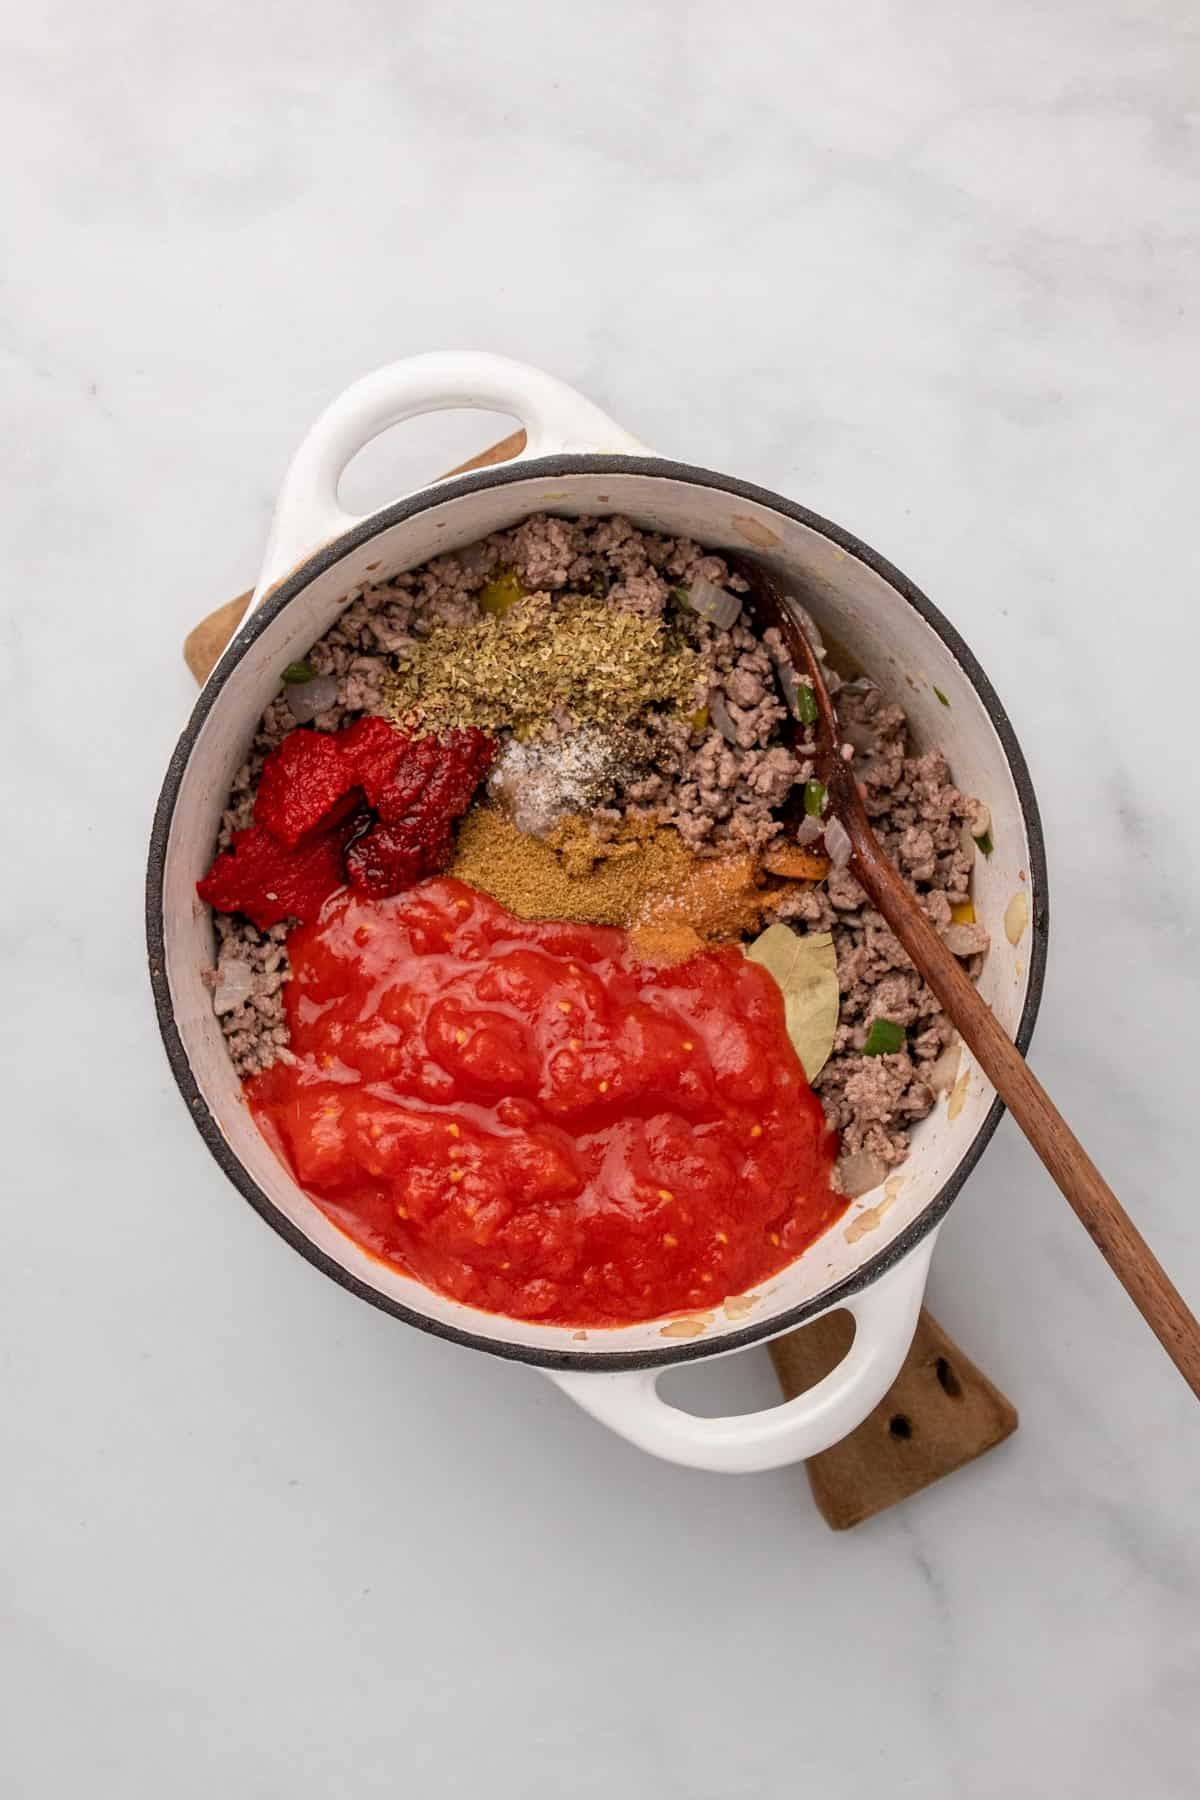 All ingredients in the pot, unmixed